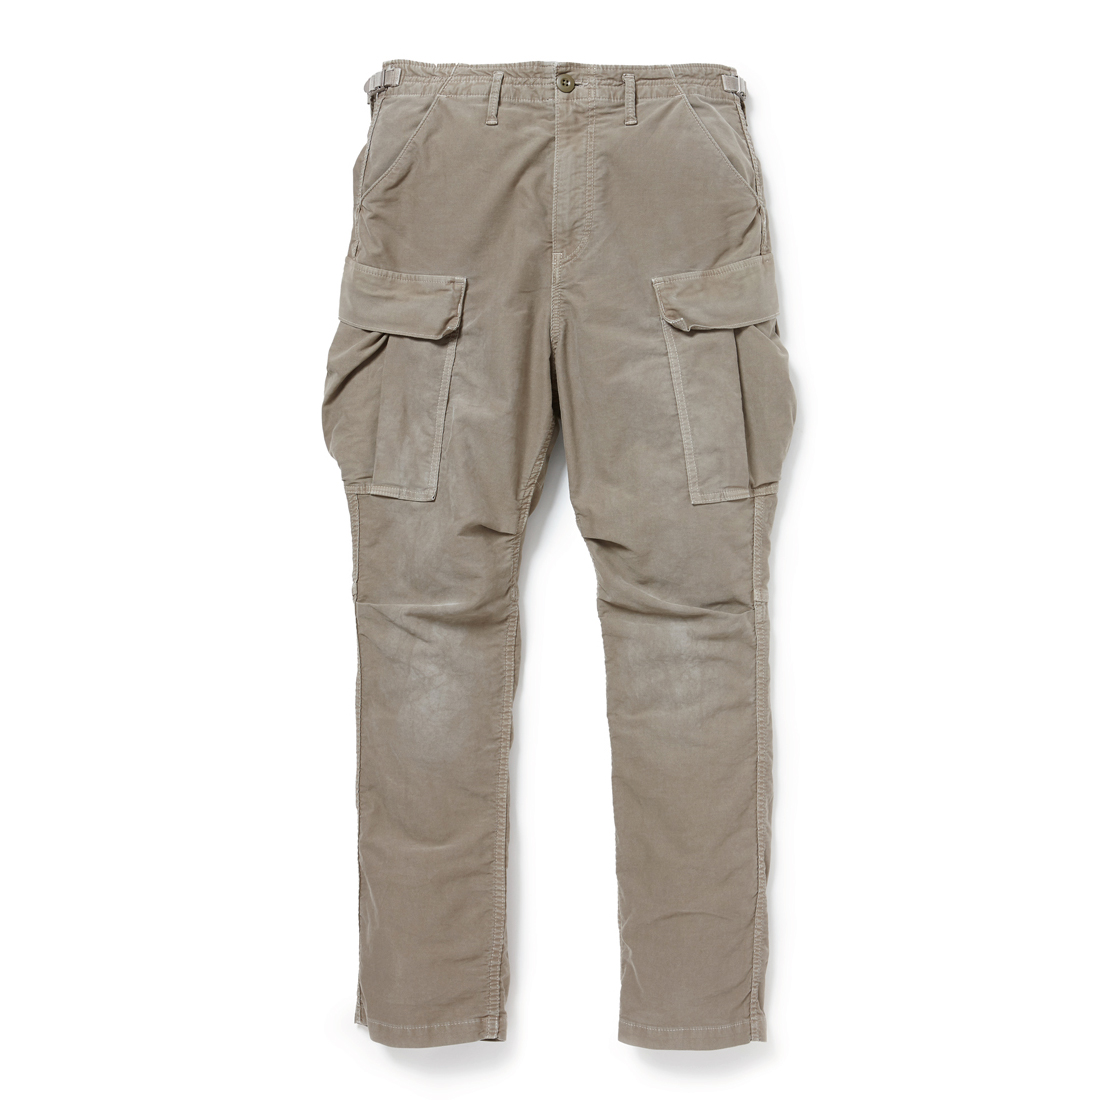 nonnative / TROOPER TROUSERS RELAX FIT C/P MOLESKIN STRETCH OVERDYED